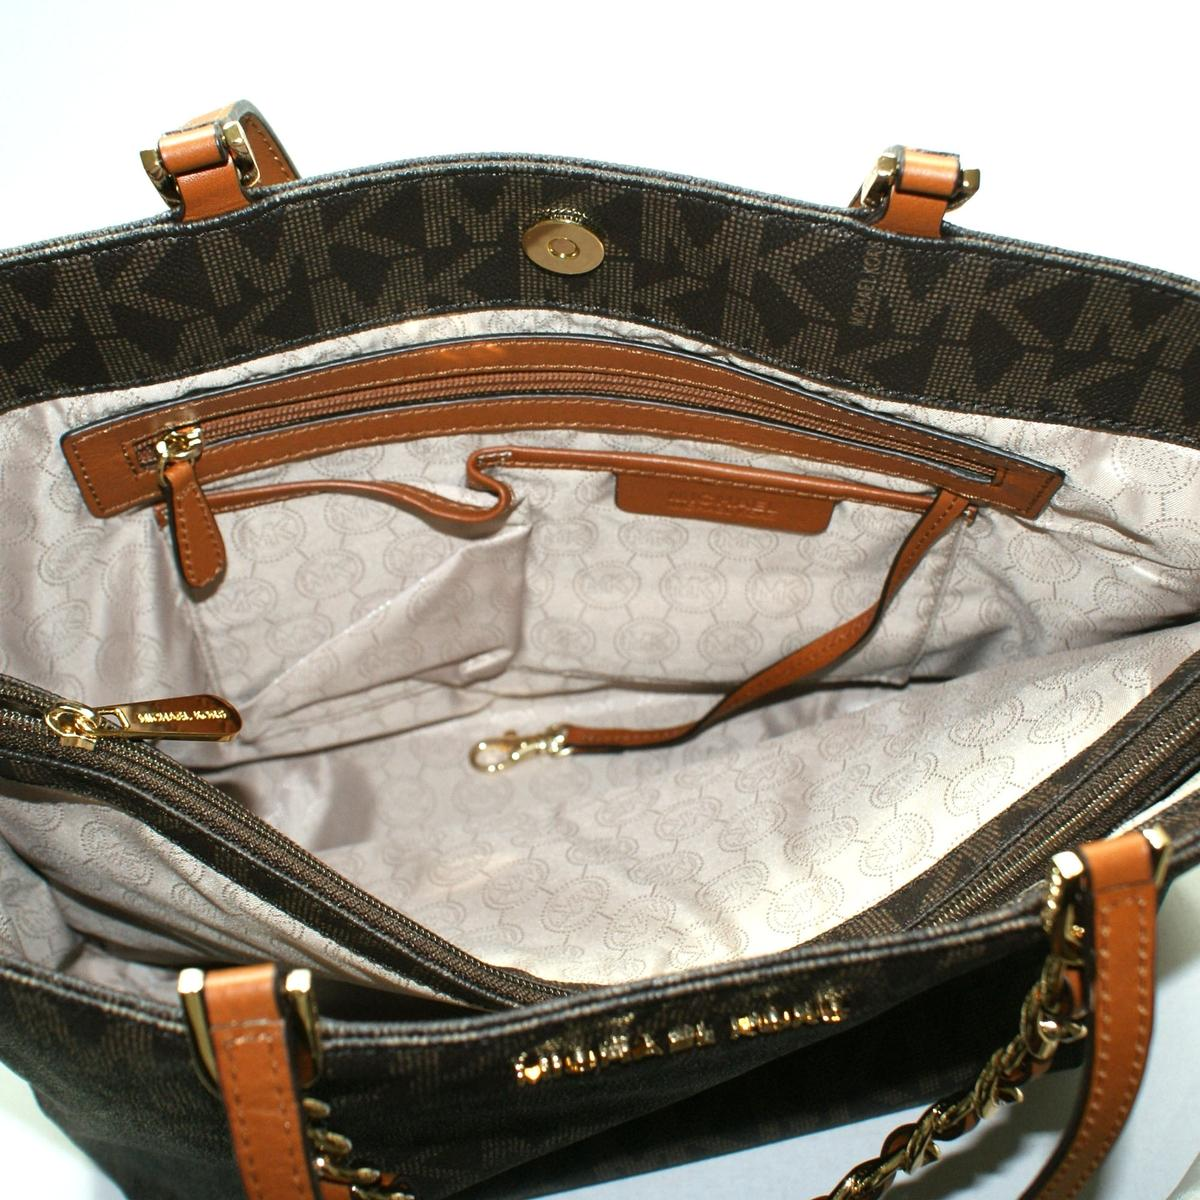 4080caa505c779 Home · Michael Kors · Harper Large MK Signature PVC East/ West Tote Brown.  CLICK THUMBNAIL TO ZOOM. Found ...